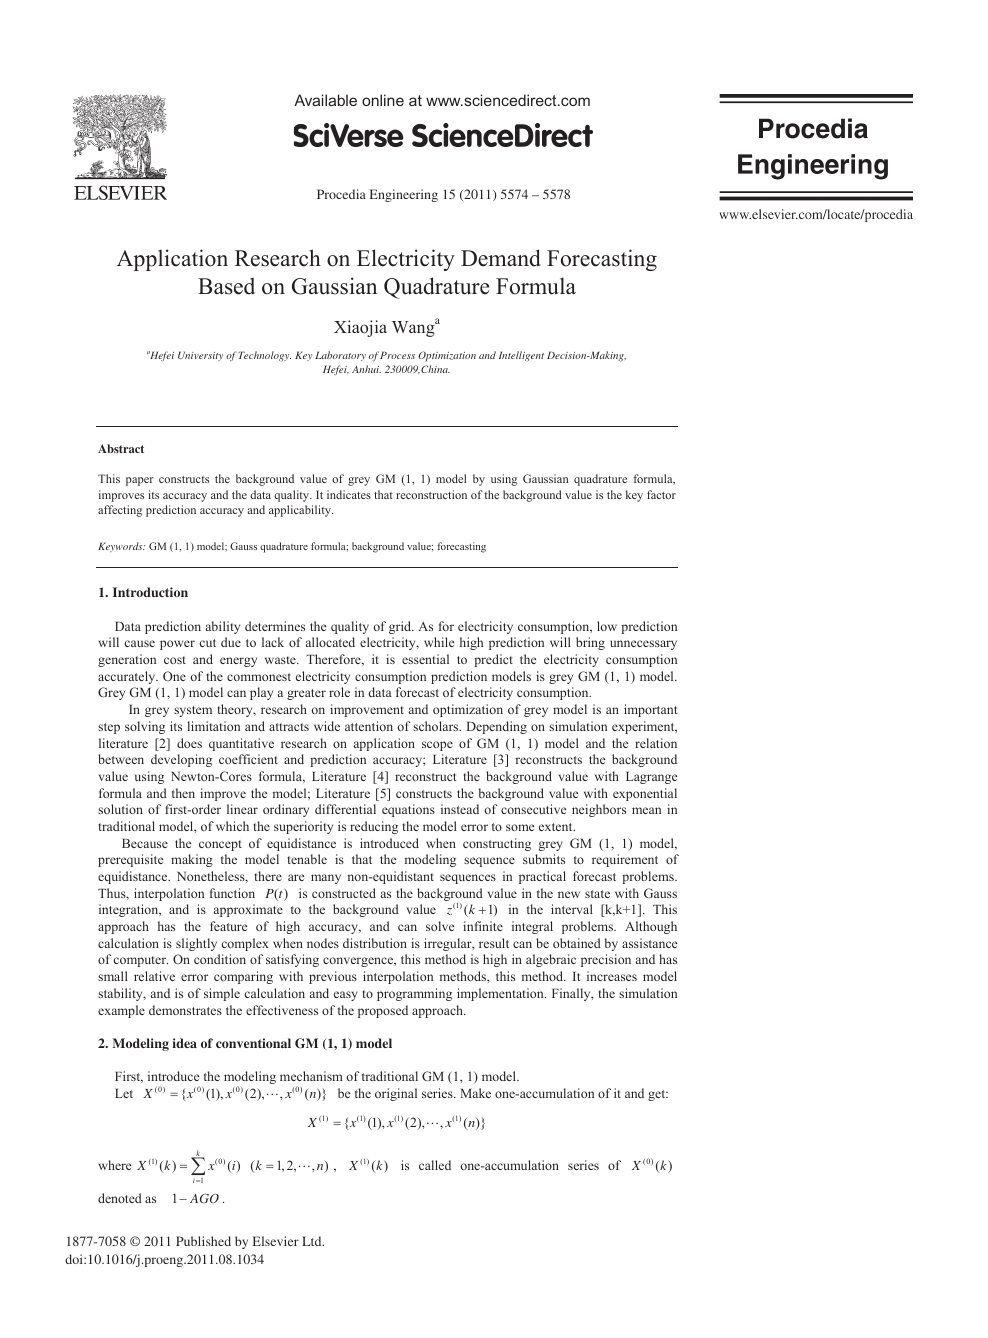 Application Research on Electricity Demand Forecasting Based